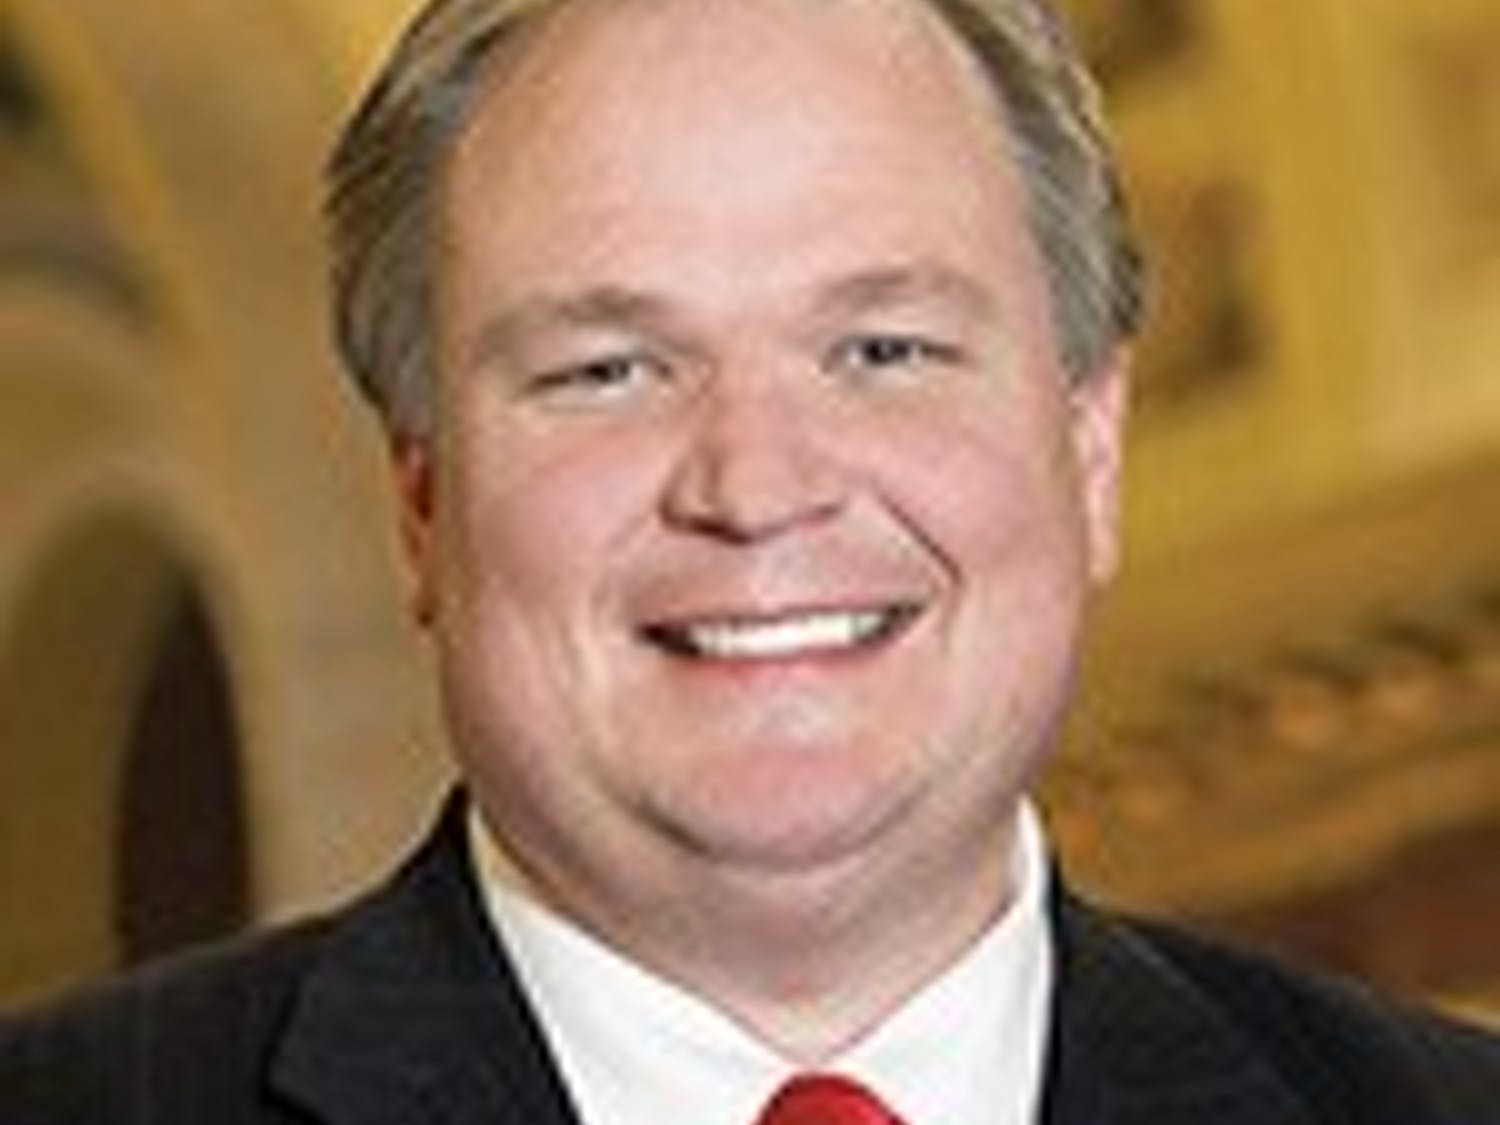 State lawmaker Rep. Andy Jorgensen, D-Milton, announced Wednesday he will not seek re-election to the Wisconsin legislature after serving since 2006.